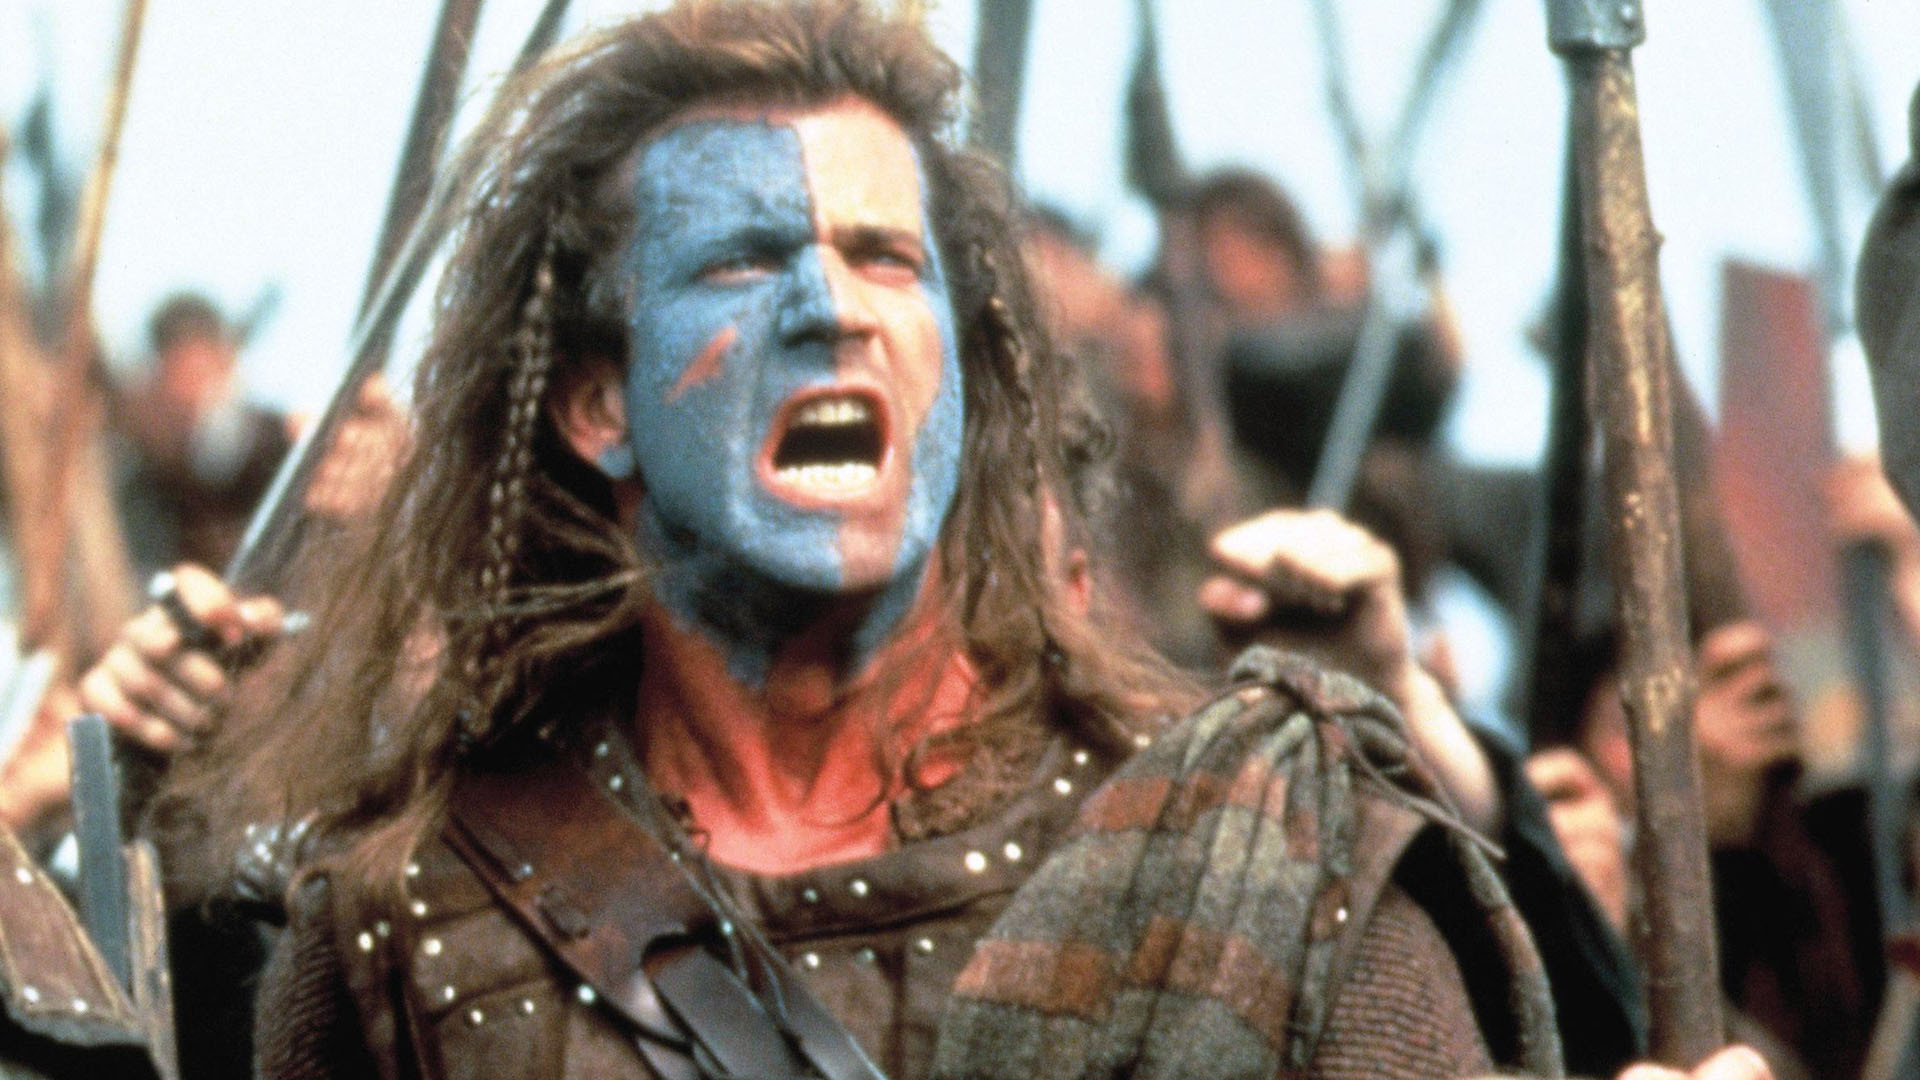 http://images6.fanpop.com/image/photos/32100000/Wallpaper-braveheart-32189752-1920-1080.jpg